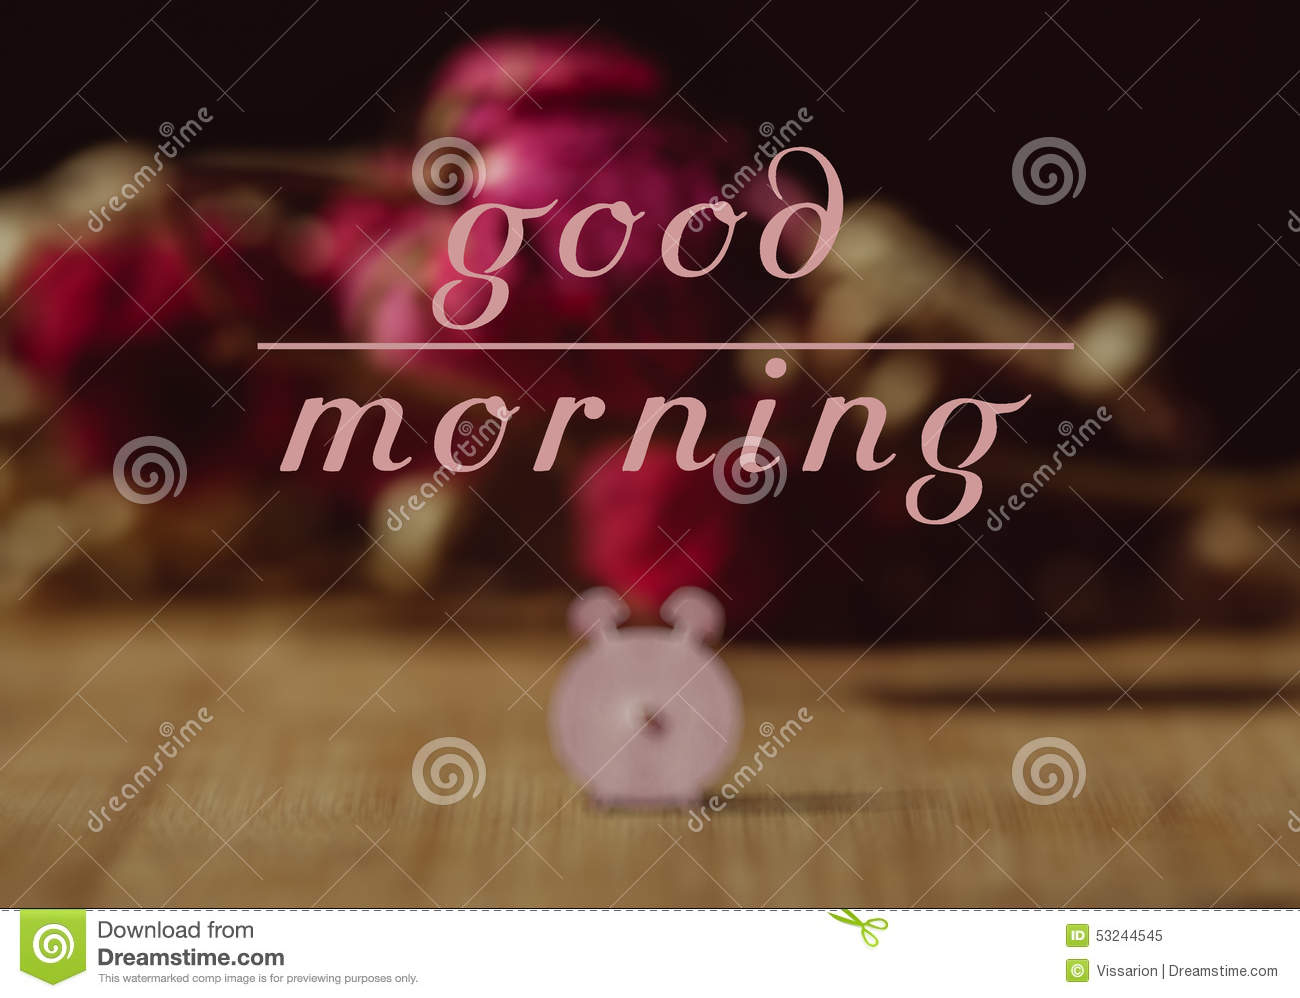 Good morning. Text in front of background with pink alarm clock royalty free stock photo